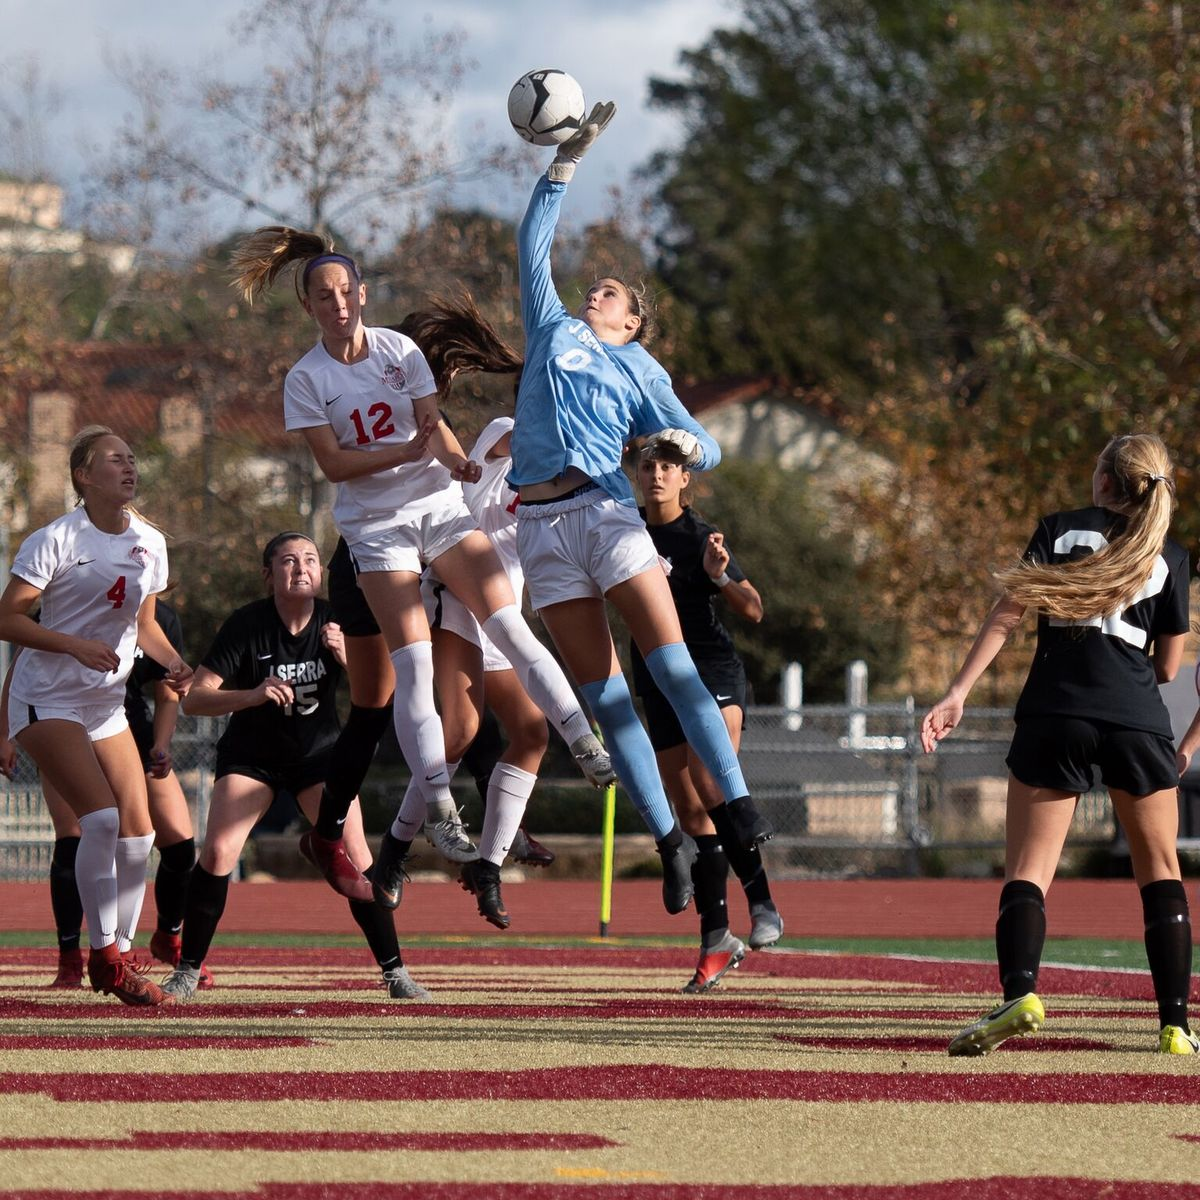 Undefeated JSerra Beats Mater Dei in 9th Shutout of Season